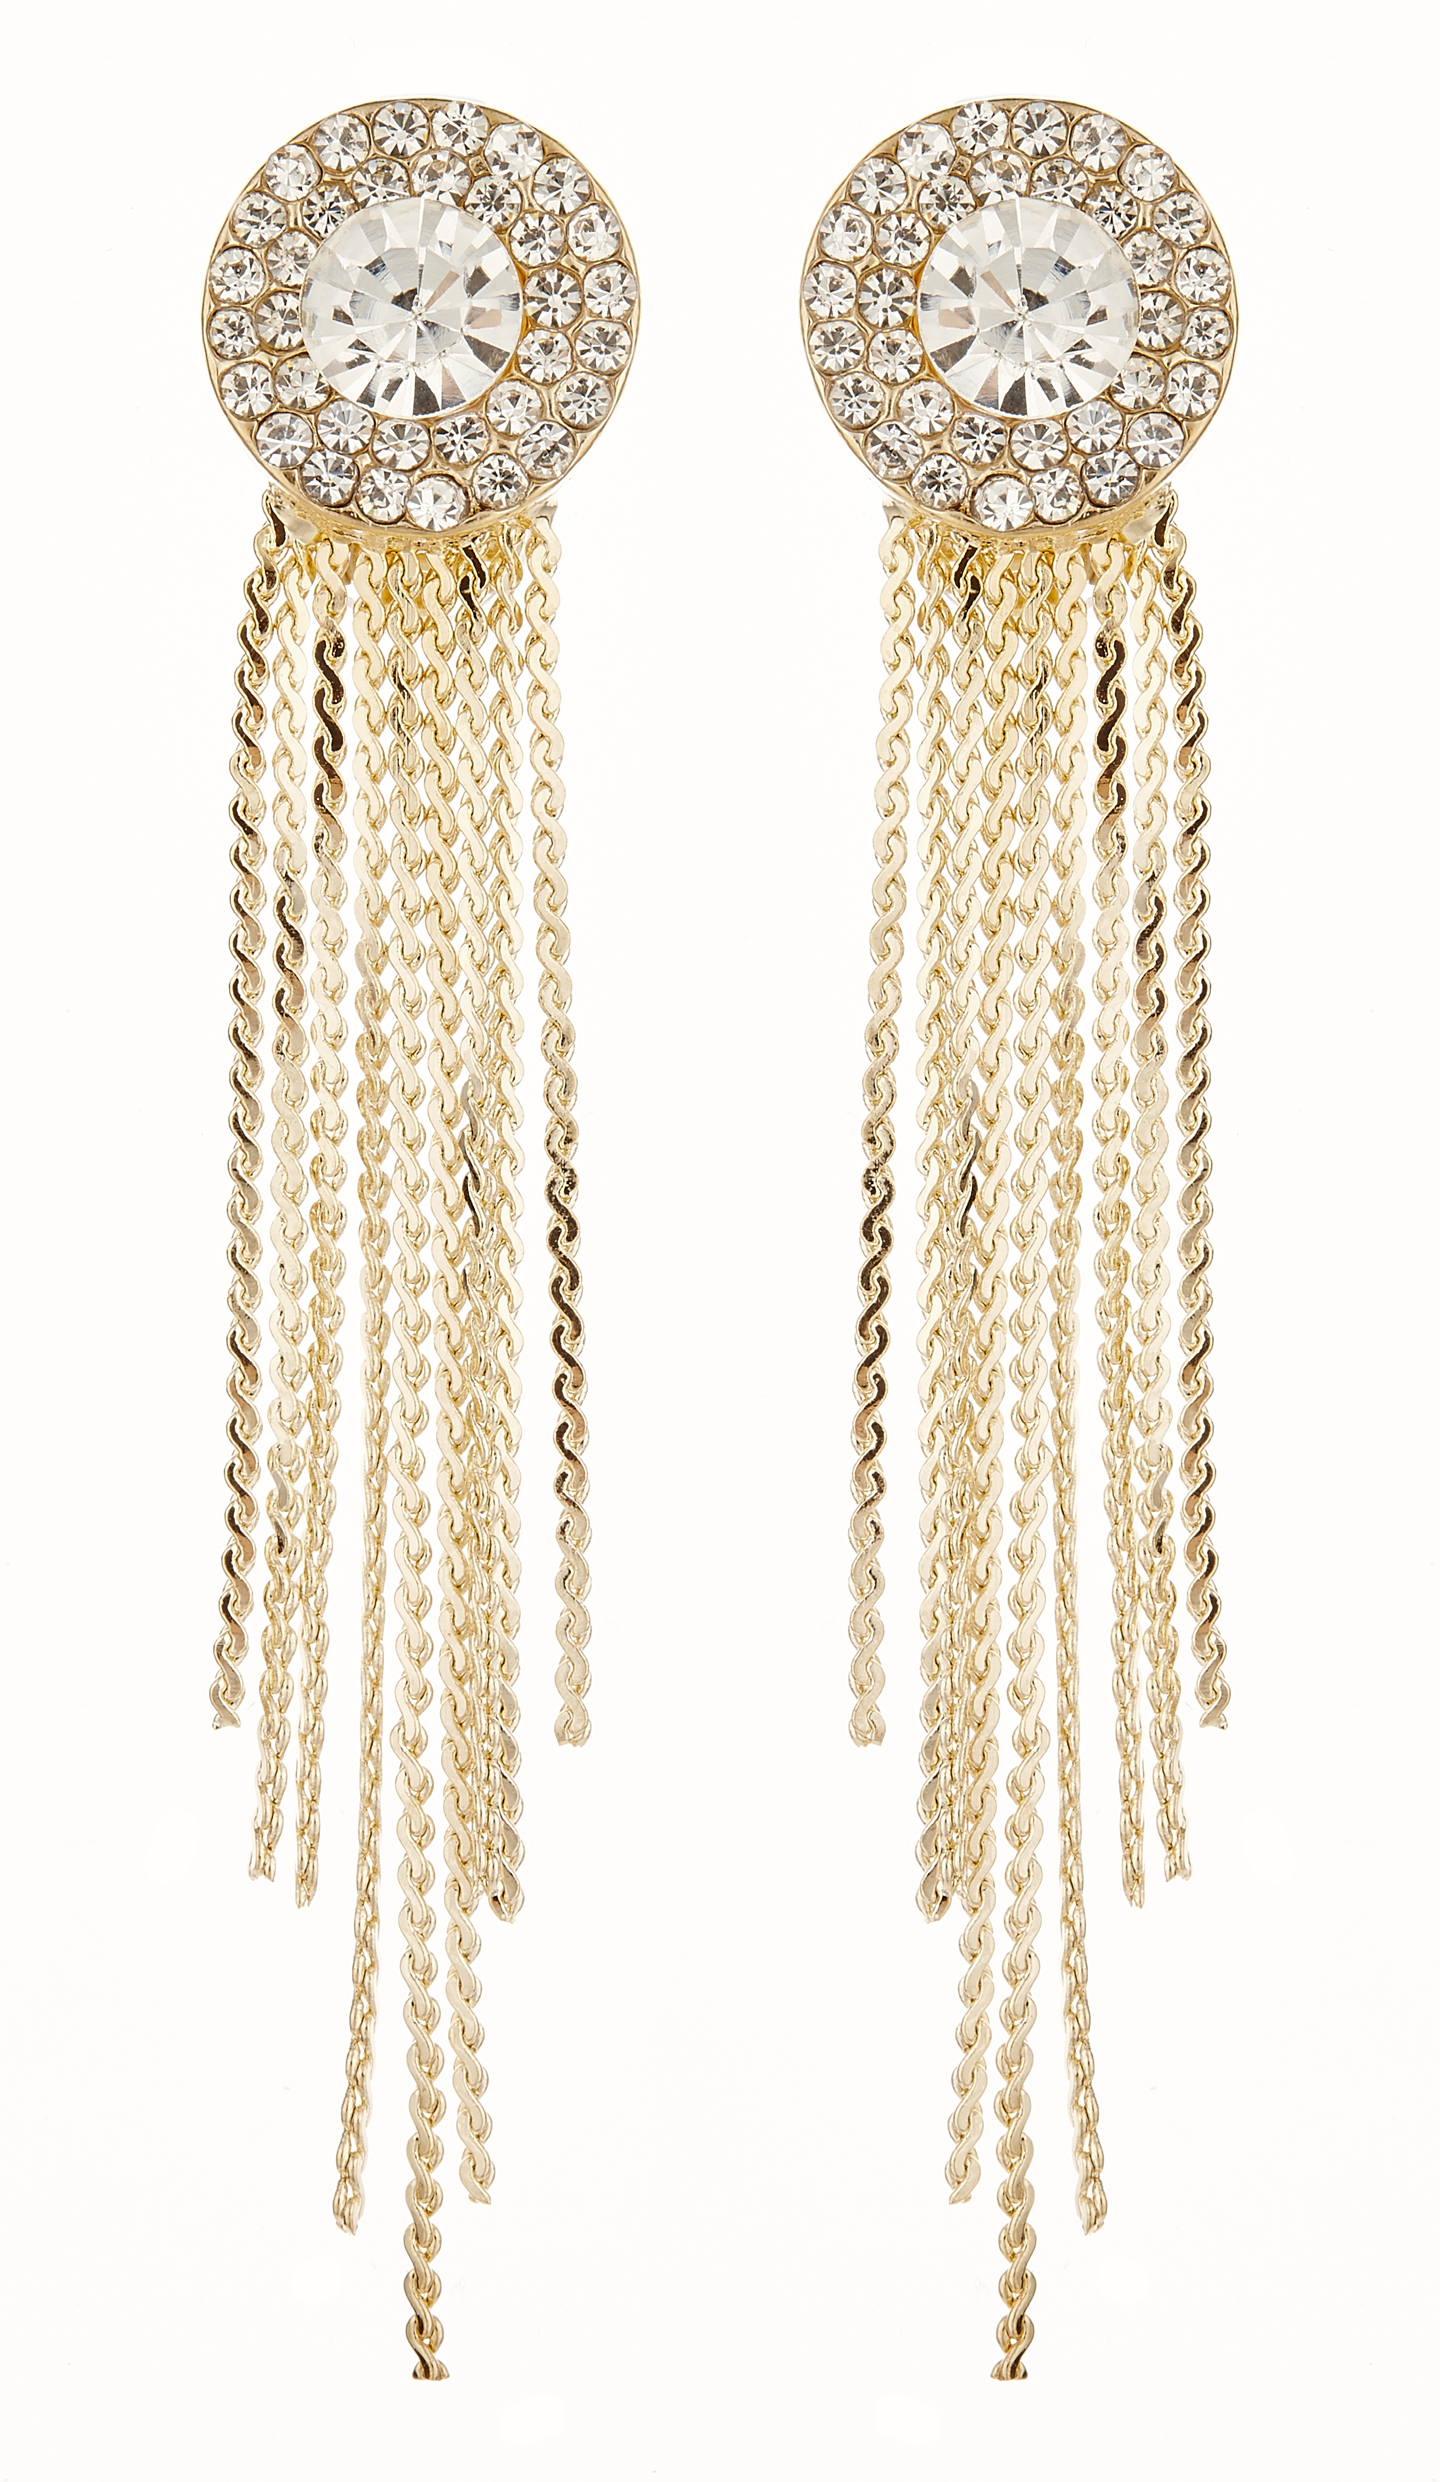 Clip On Earrings - Carol G - gold earing with clear crystals and linked strands